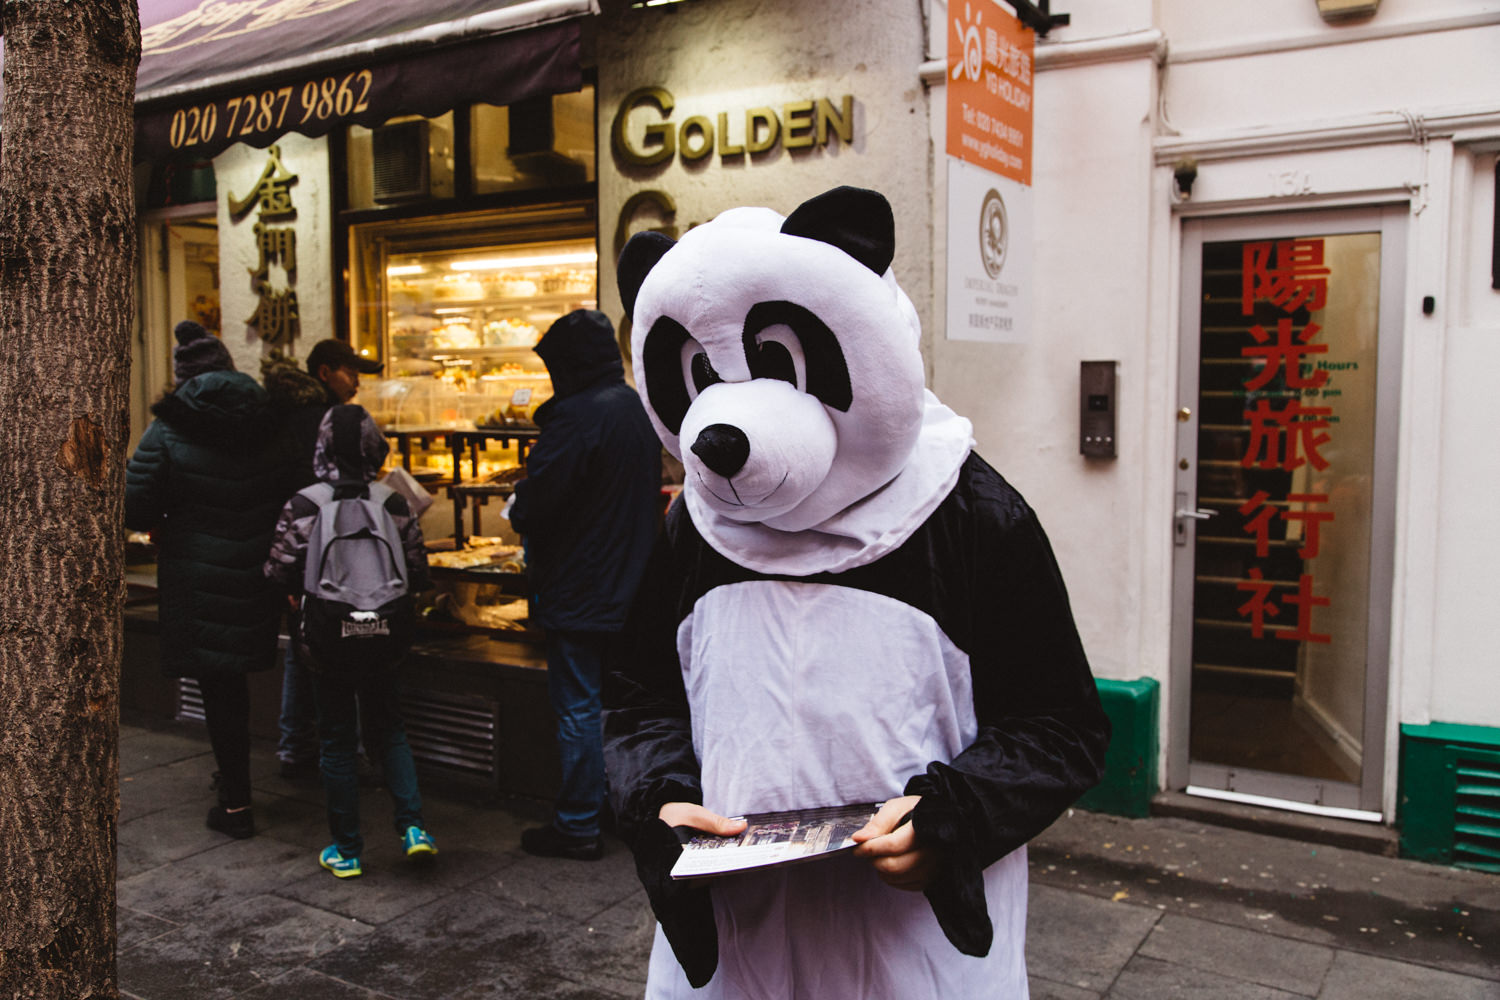 Person dressed as a panda in front of cake shop during the Chinese New Year celebrations in London